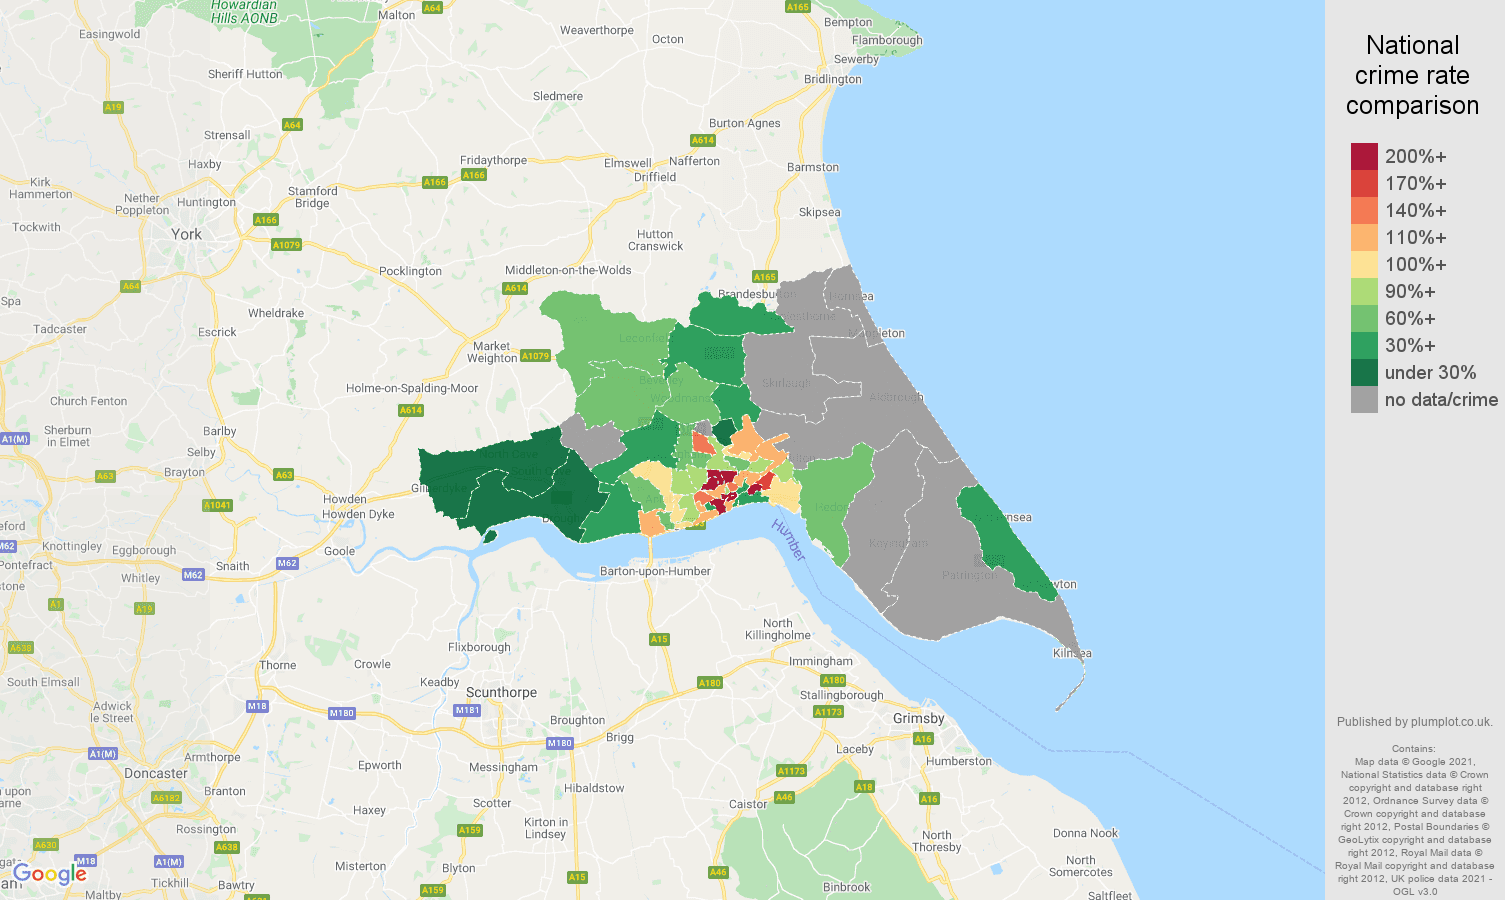 Hull bicycle theft crime rate comparison map